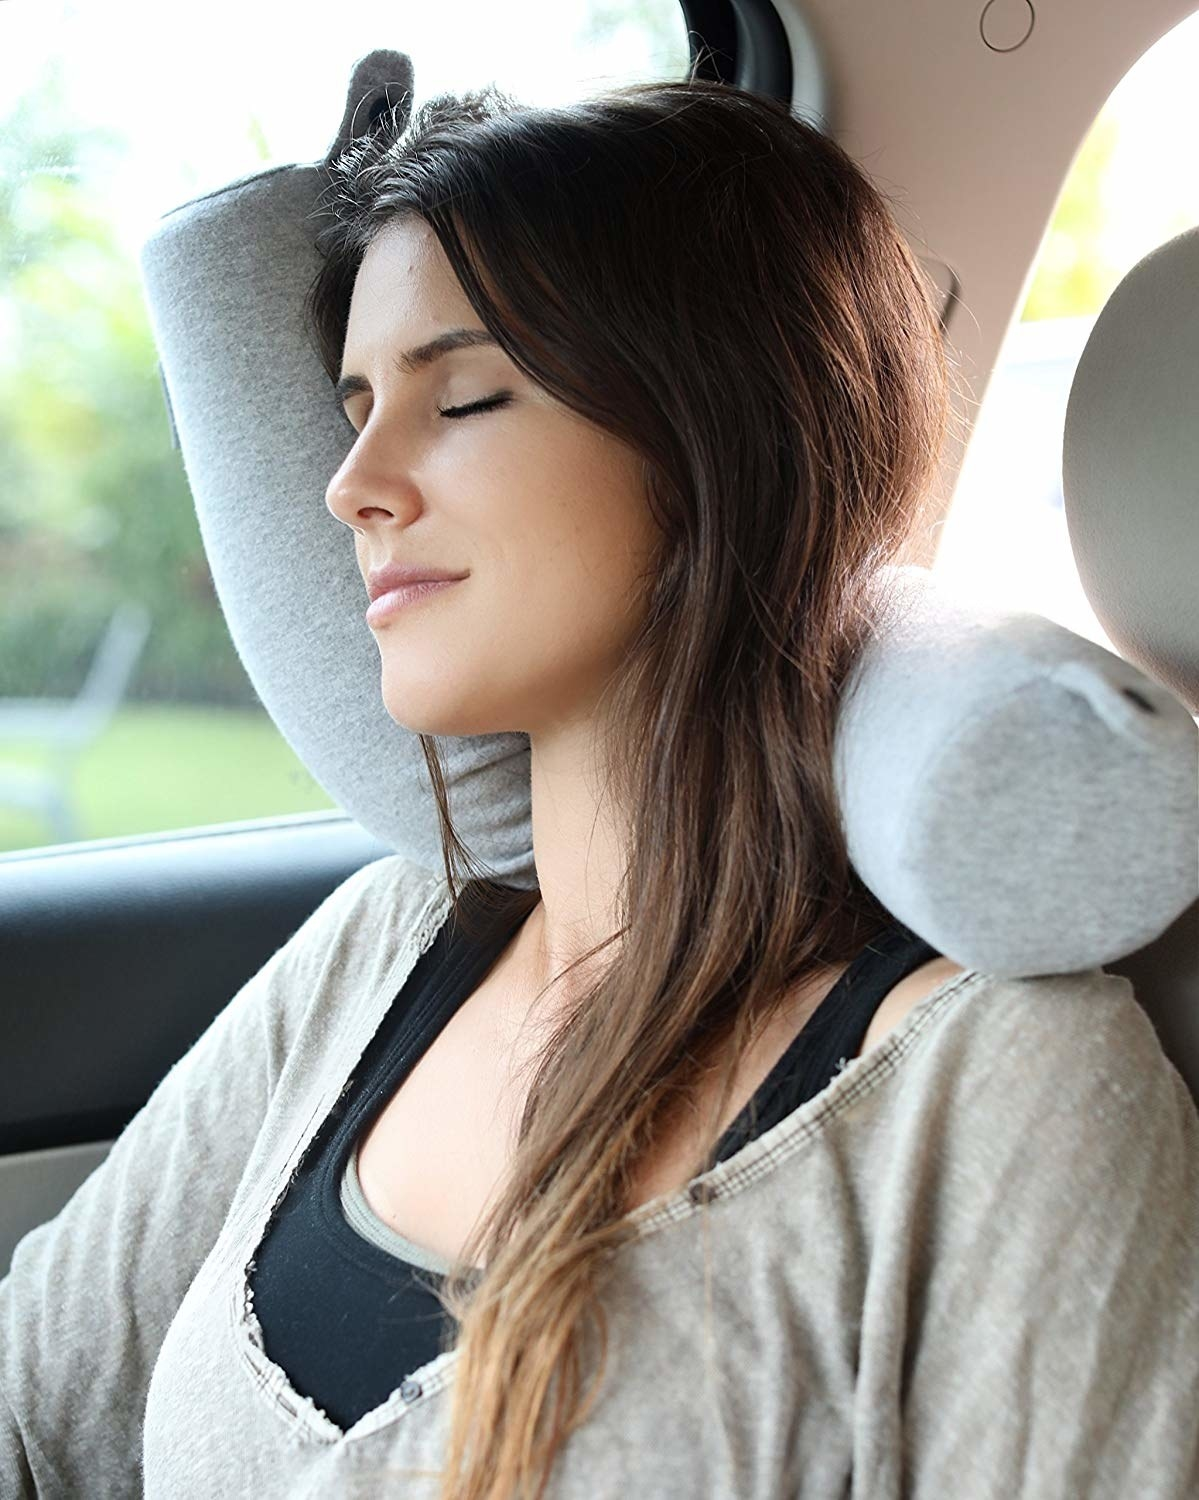 a model using the twisted neck pillow in a car